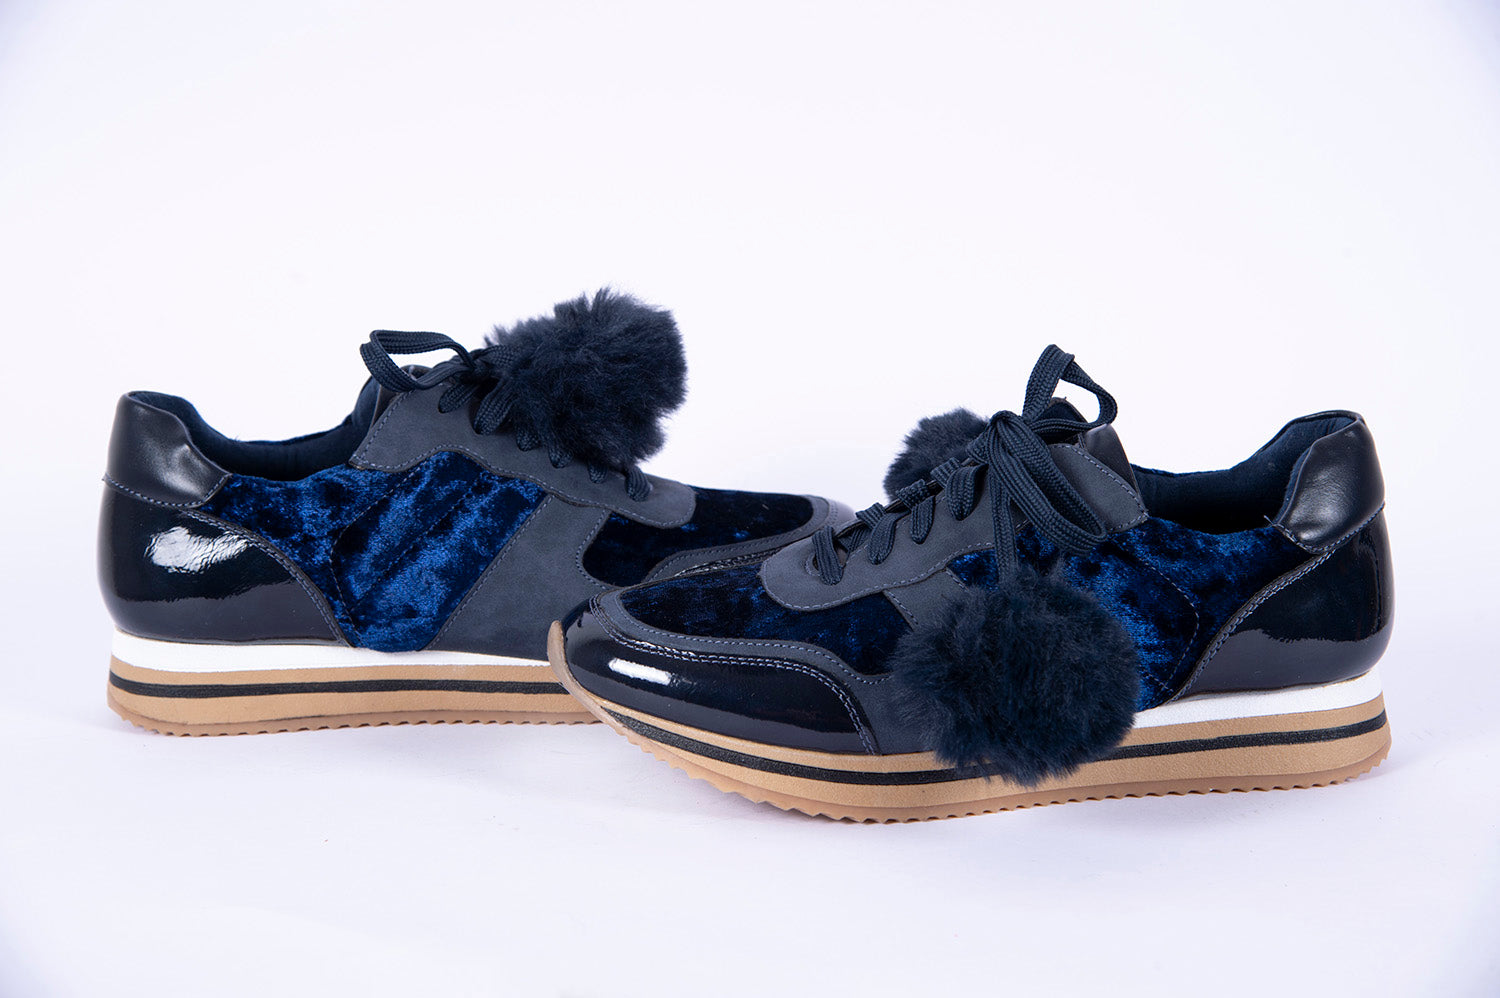 Fabs velvet sneakers with bom bom tie details